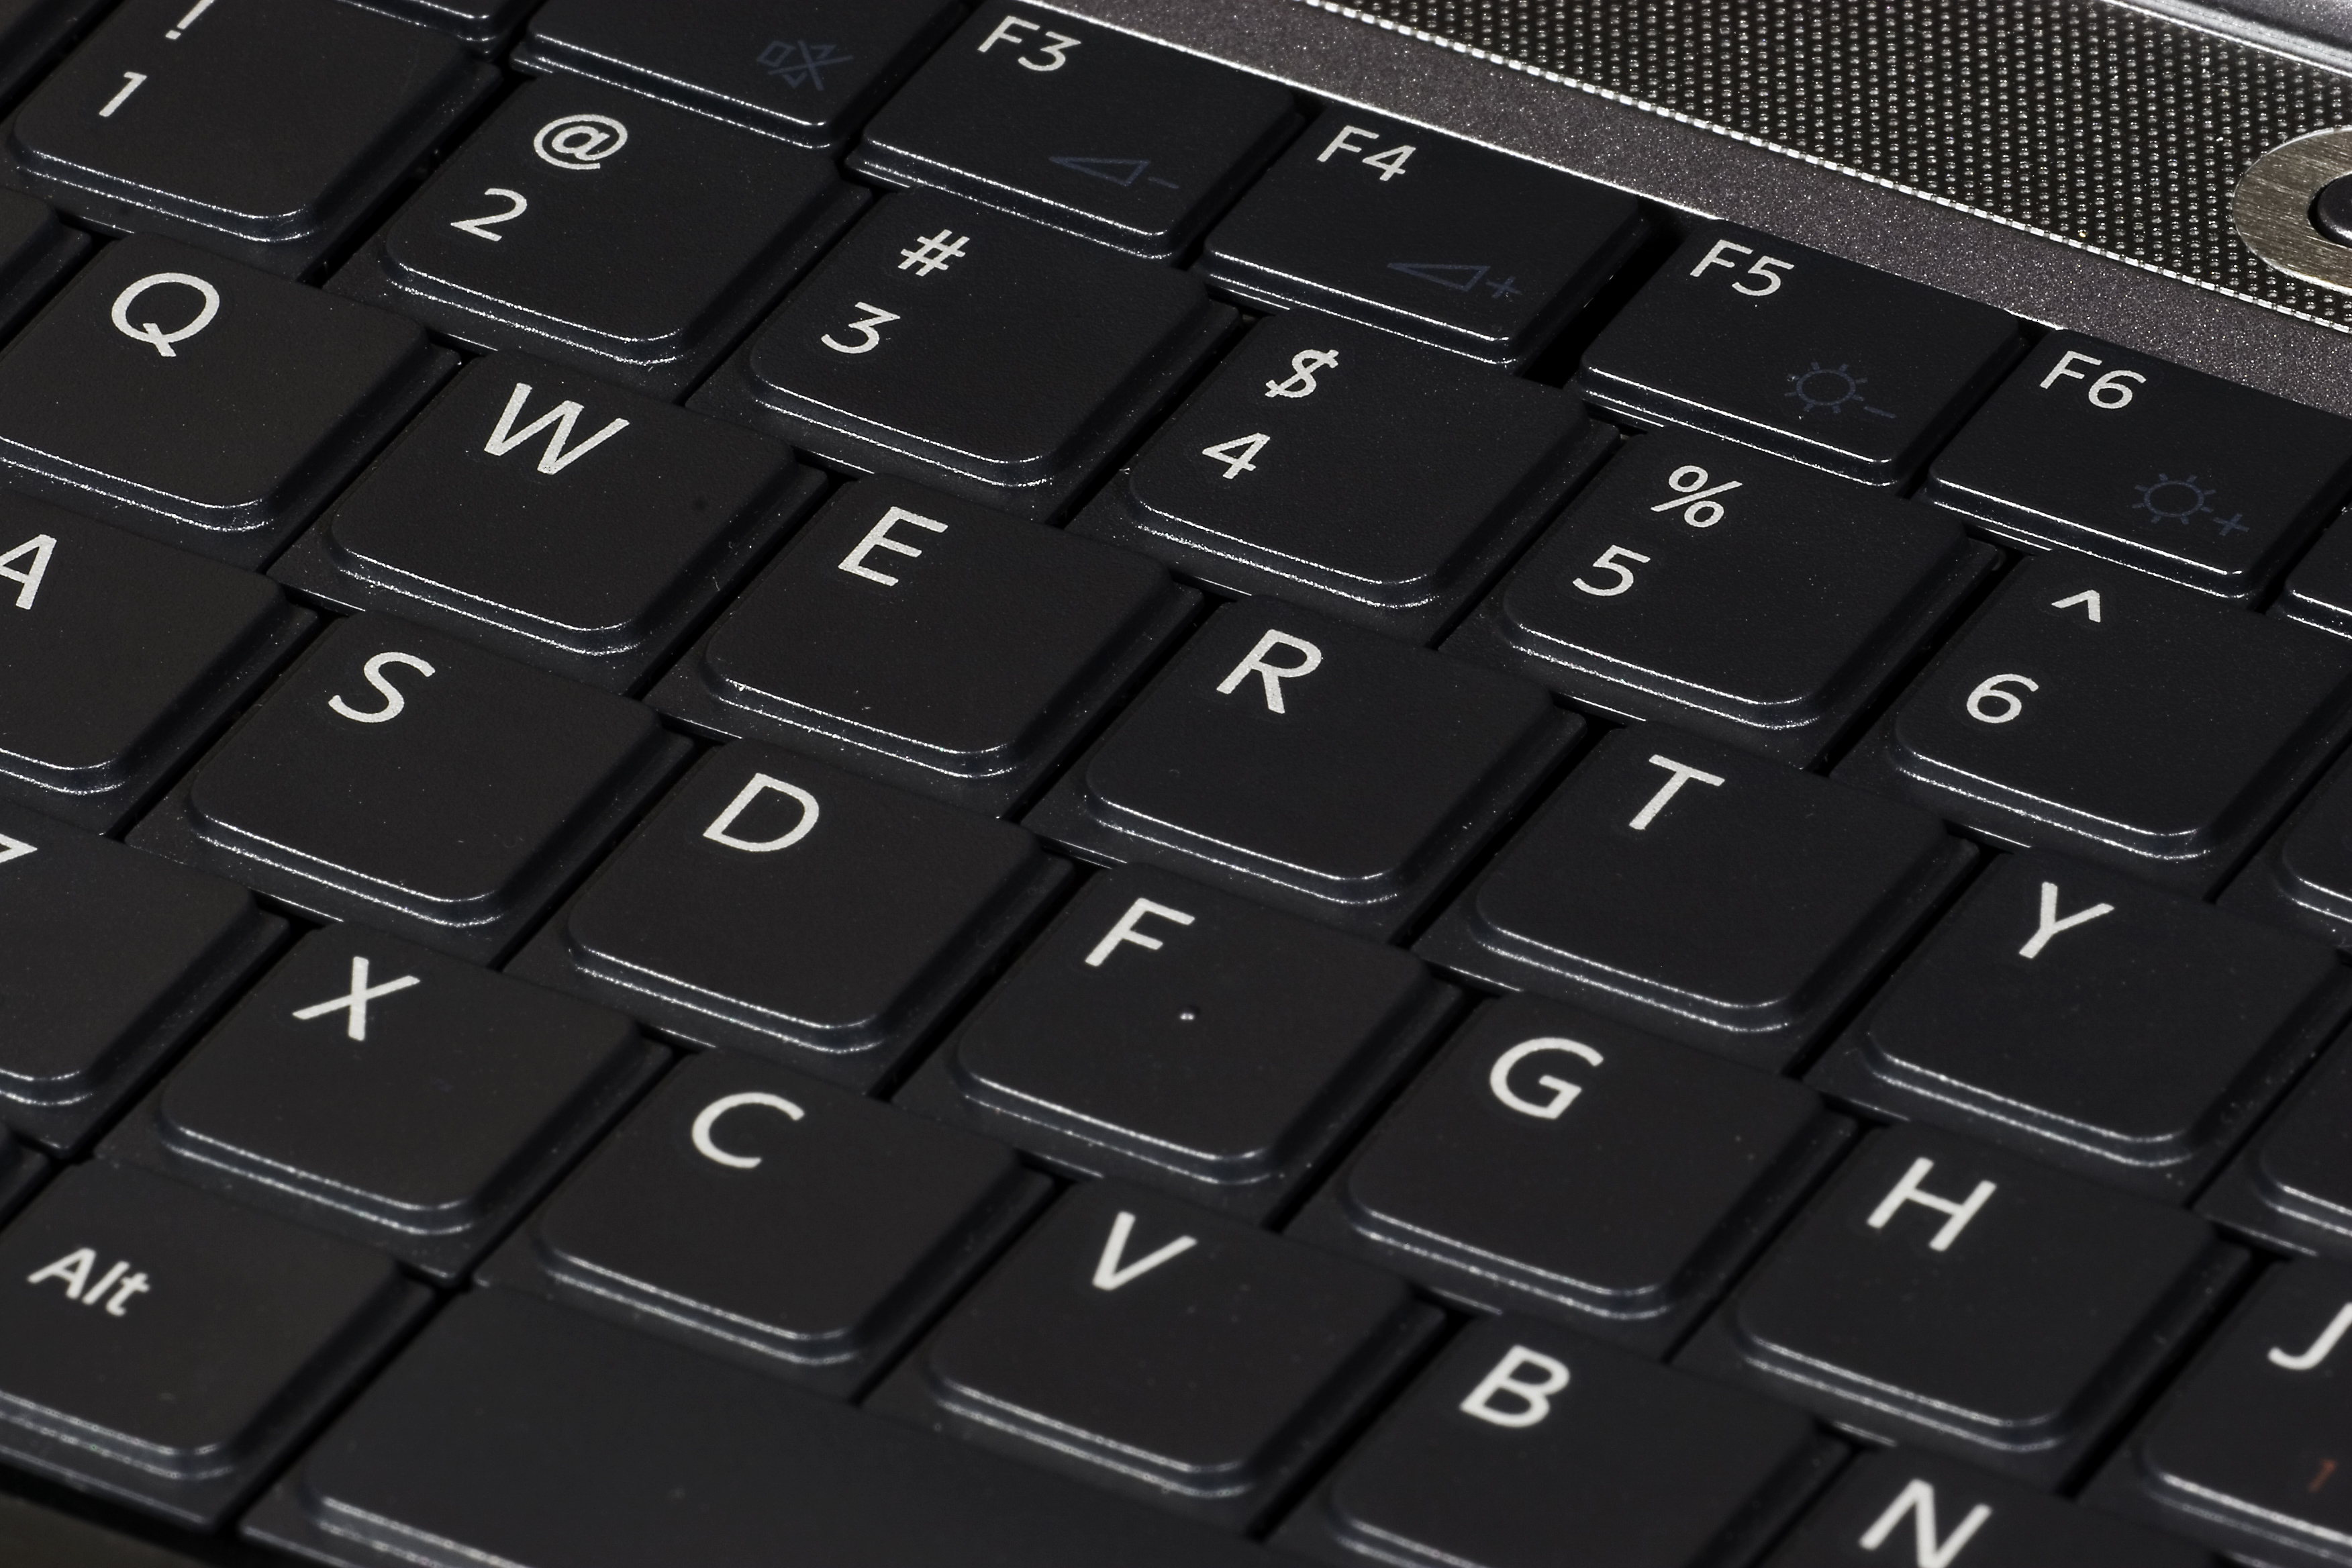 Foto: Wikimedia Commons/MichaelMaggs (http://commons.wikimedia.org/wiki/File:QWERTY_keyboard.jpg#/media/File:QWERTY_keyboard.jpg) Lizenz: CC-BY-SA-3.0 (http://creativecommons.org/licenses/by-sa/3.0/)